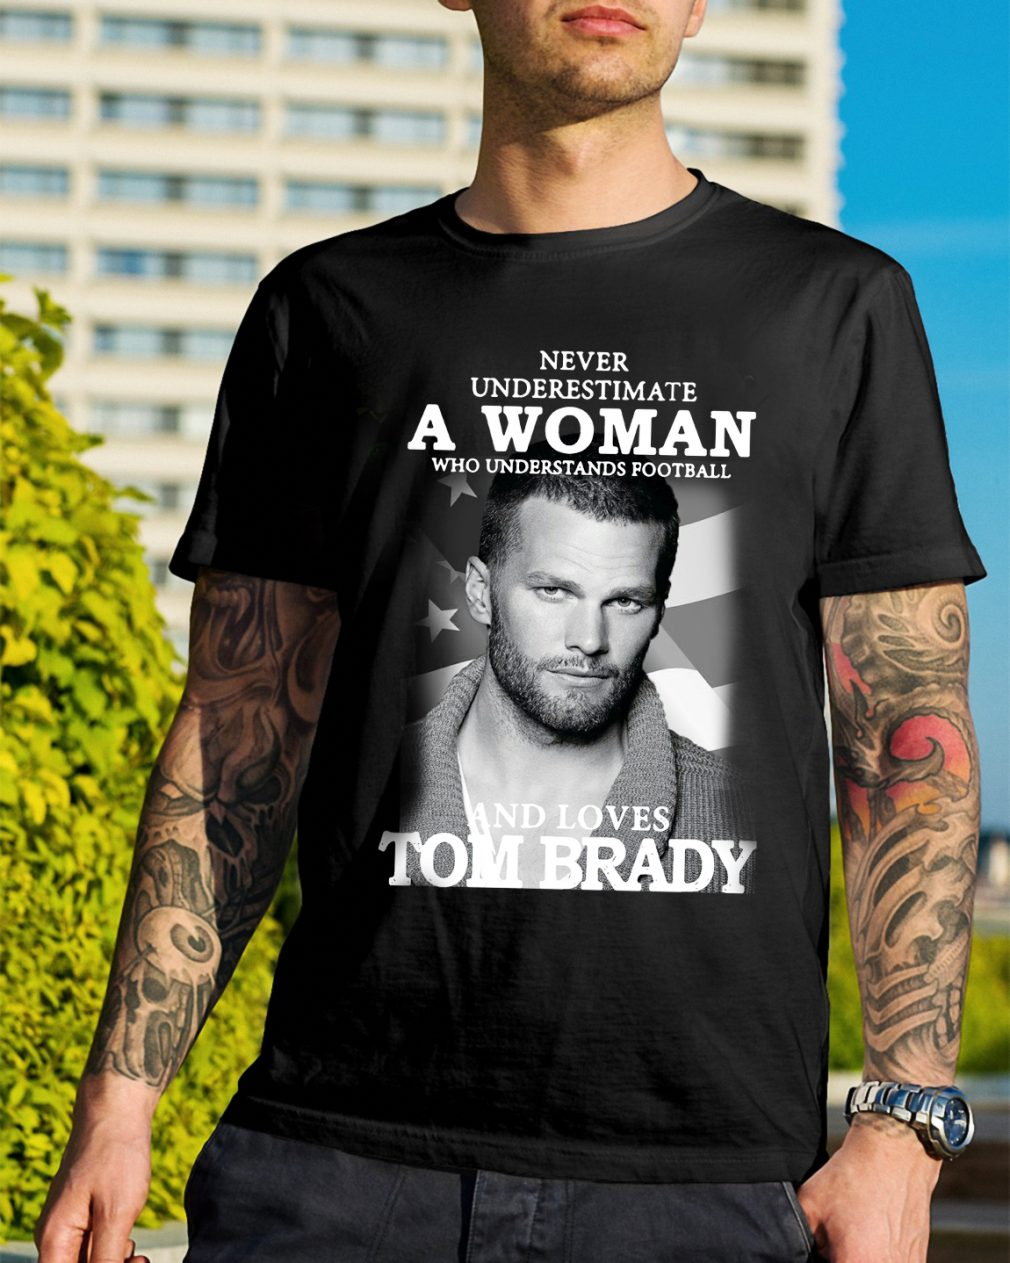 A woman who understands football and loves Tom Brady shirt